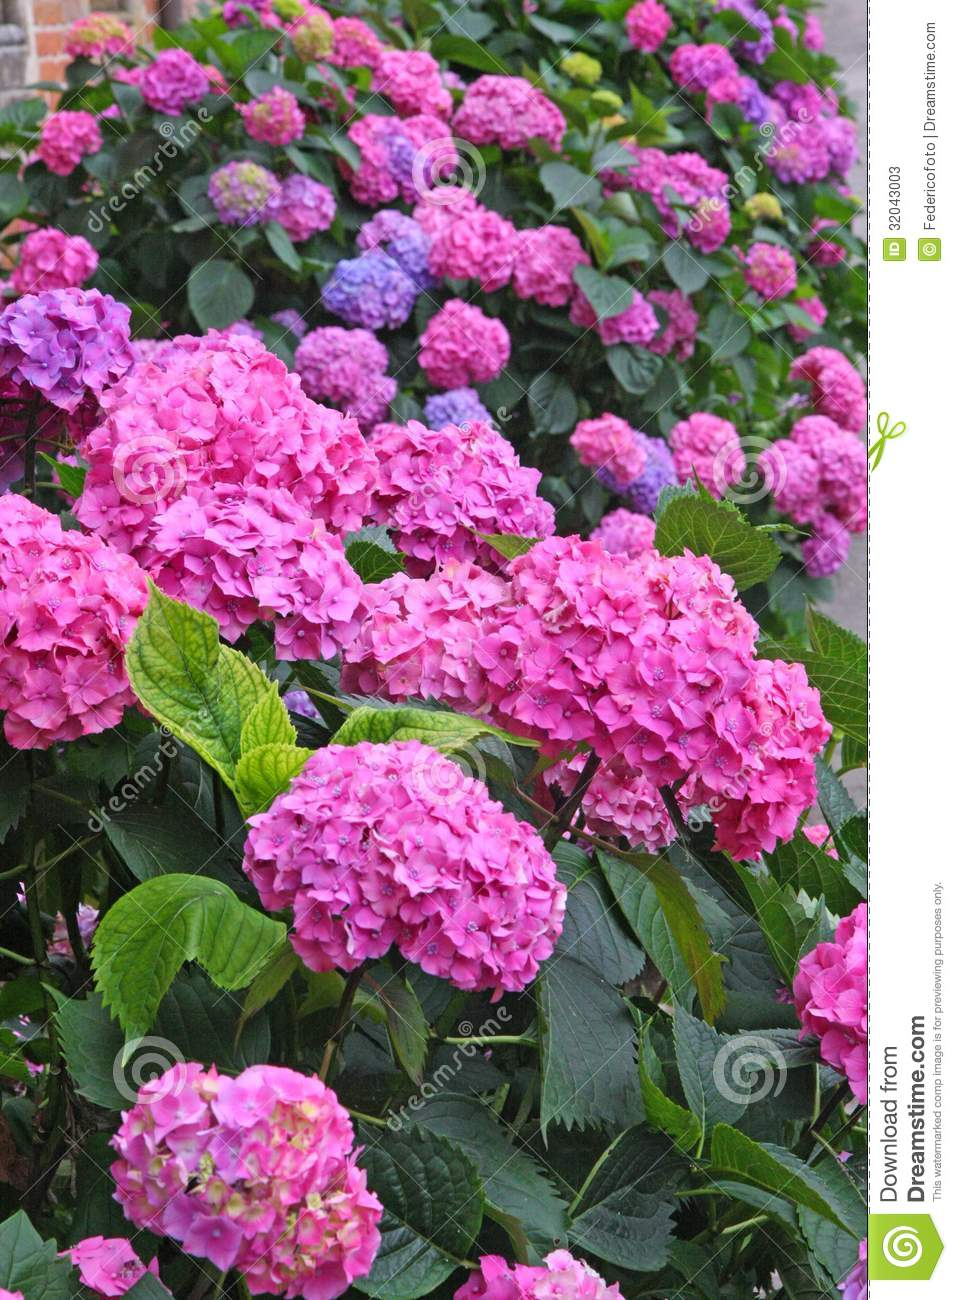 Flower Bed Full Of Purple Hydrangea Flowers And Pink And Blue Stock